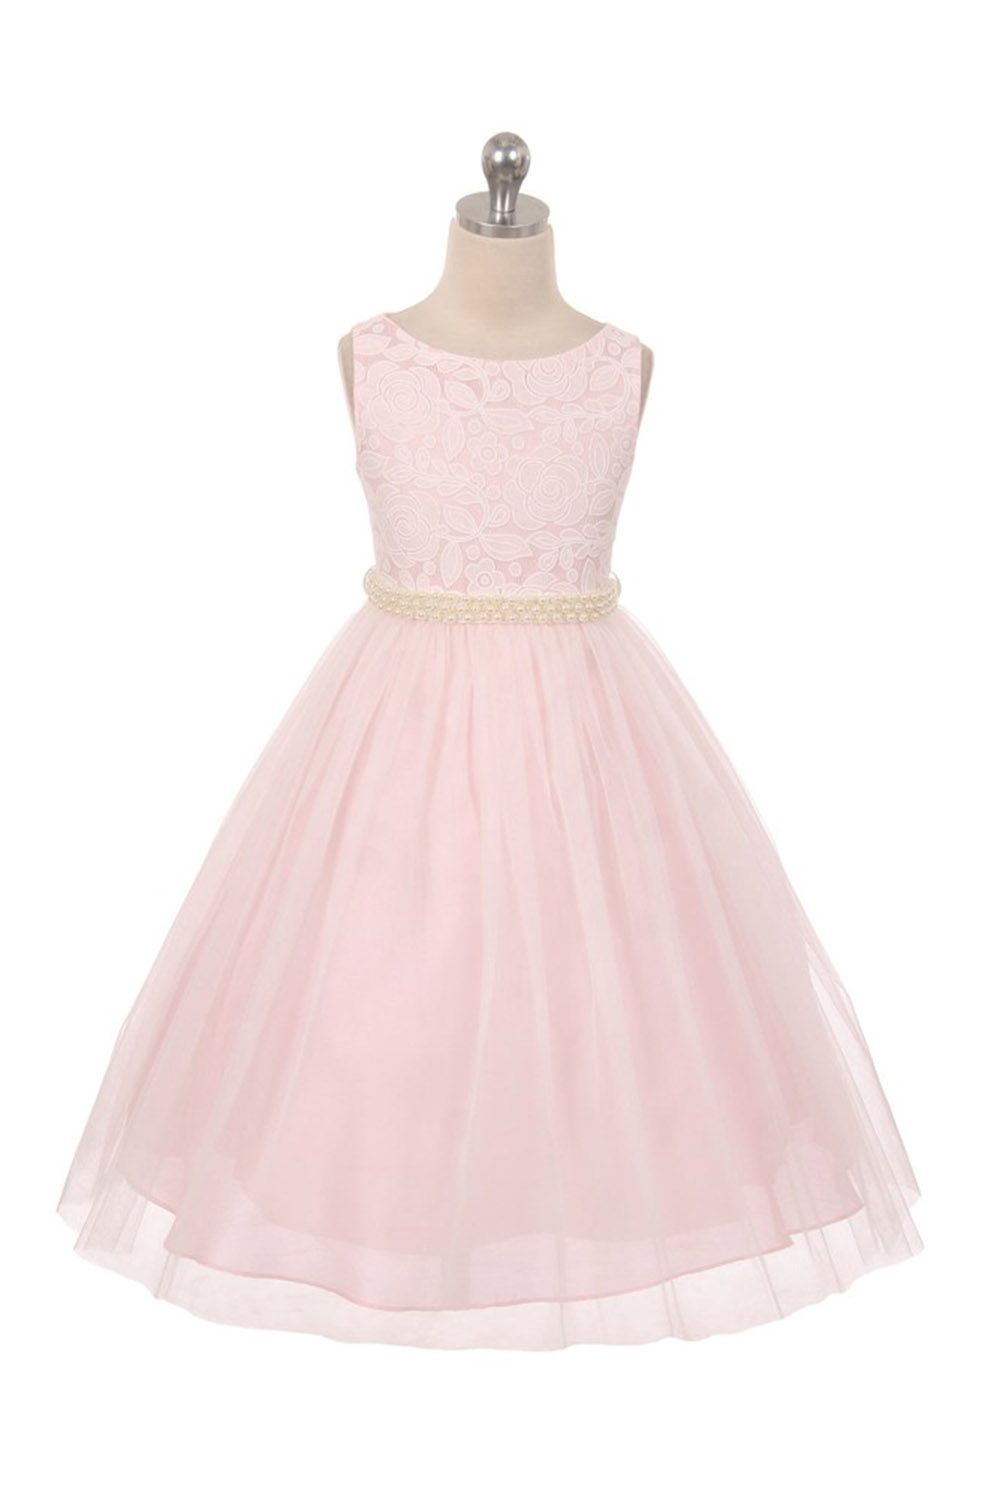 3ca8c94efc8 Flower girl dress blush pink lace top with curl tulle skirt